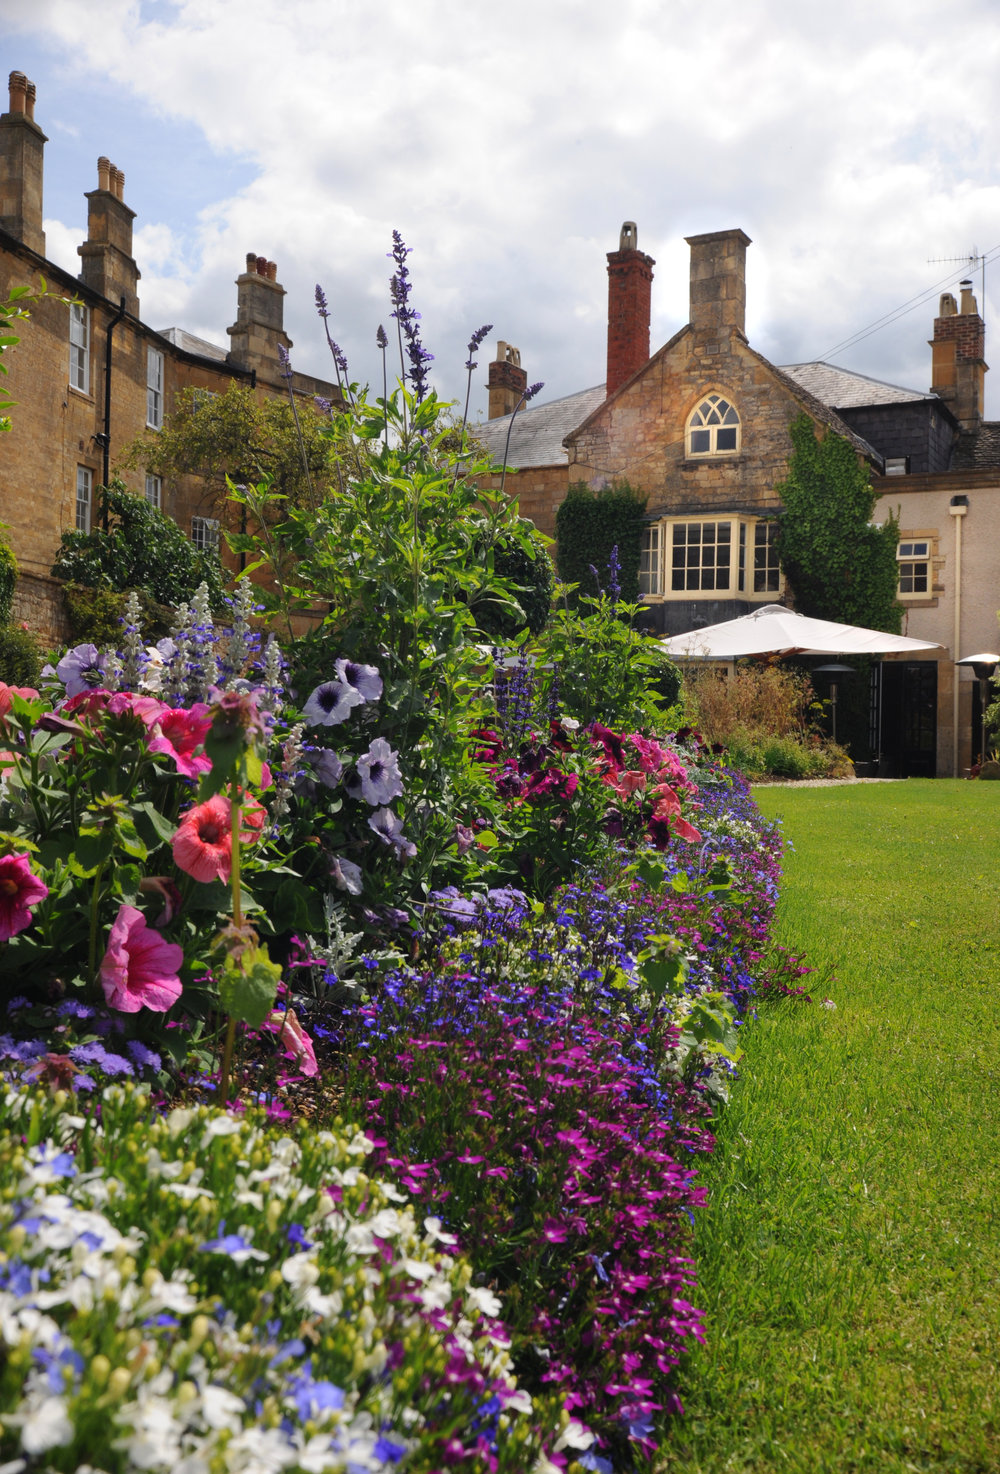 The Garden of the Kings Hotel Chipping Campden